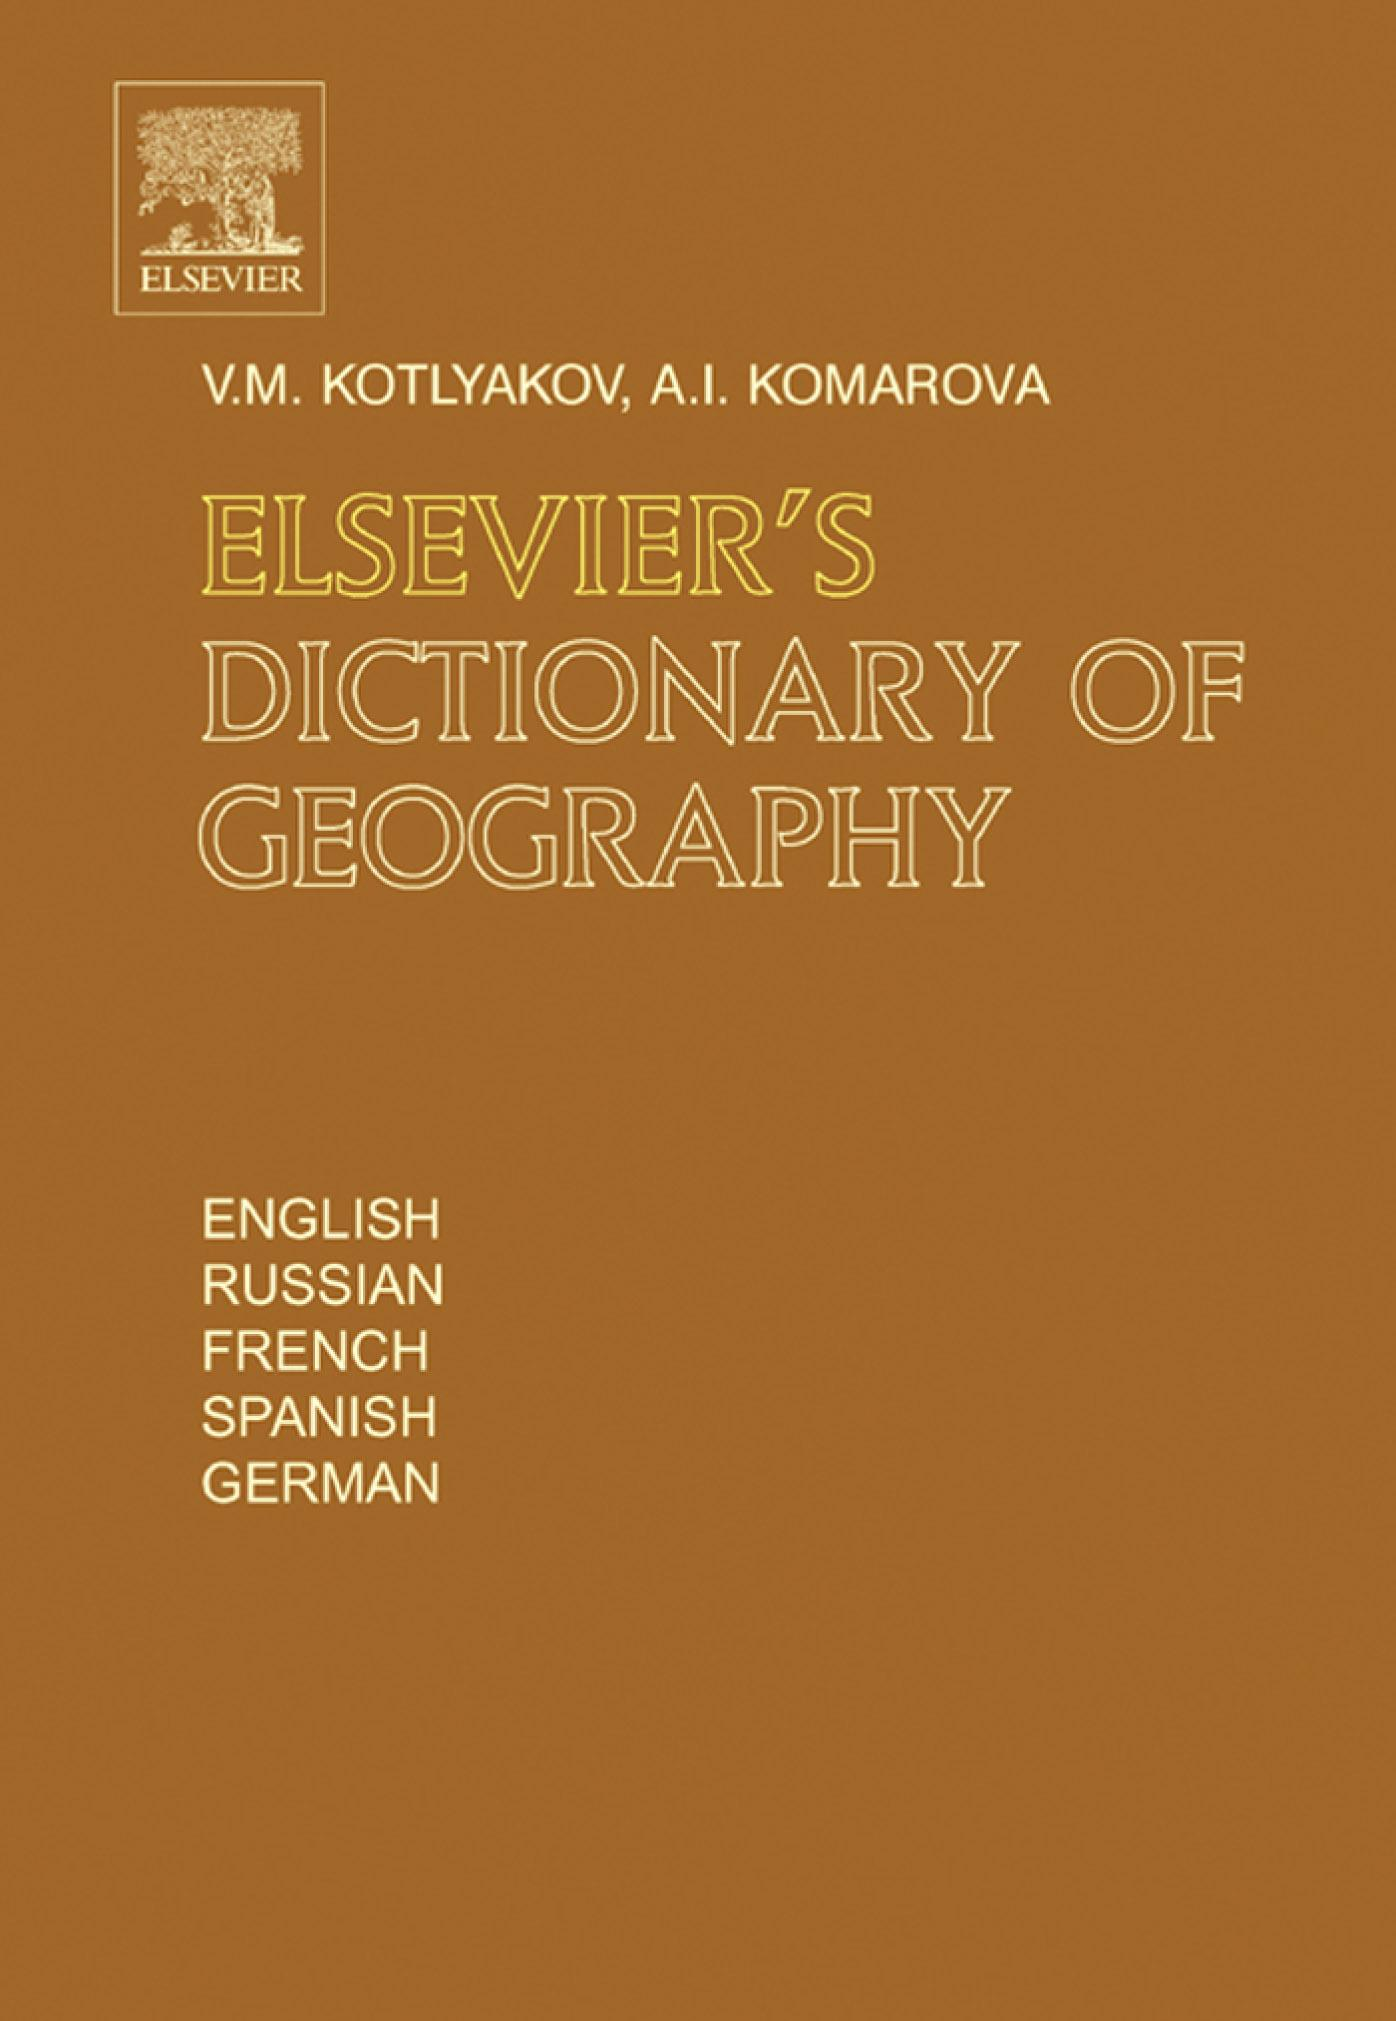 Elsevier's Dictionary of Geography: in English, Russian, French, Spanish and German EB9780080488783